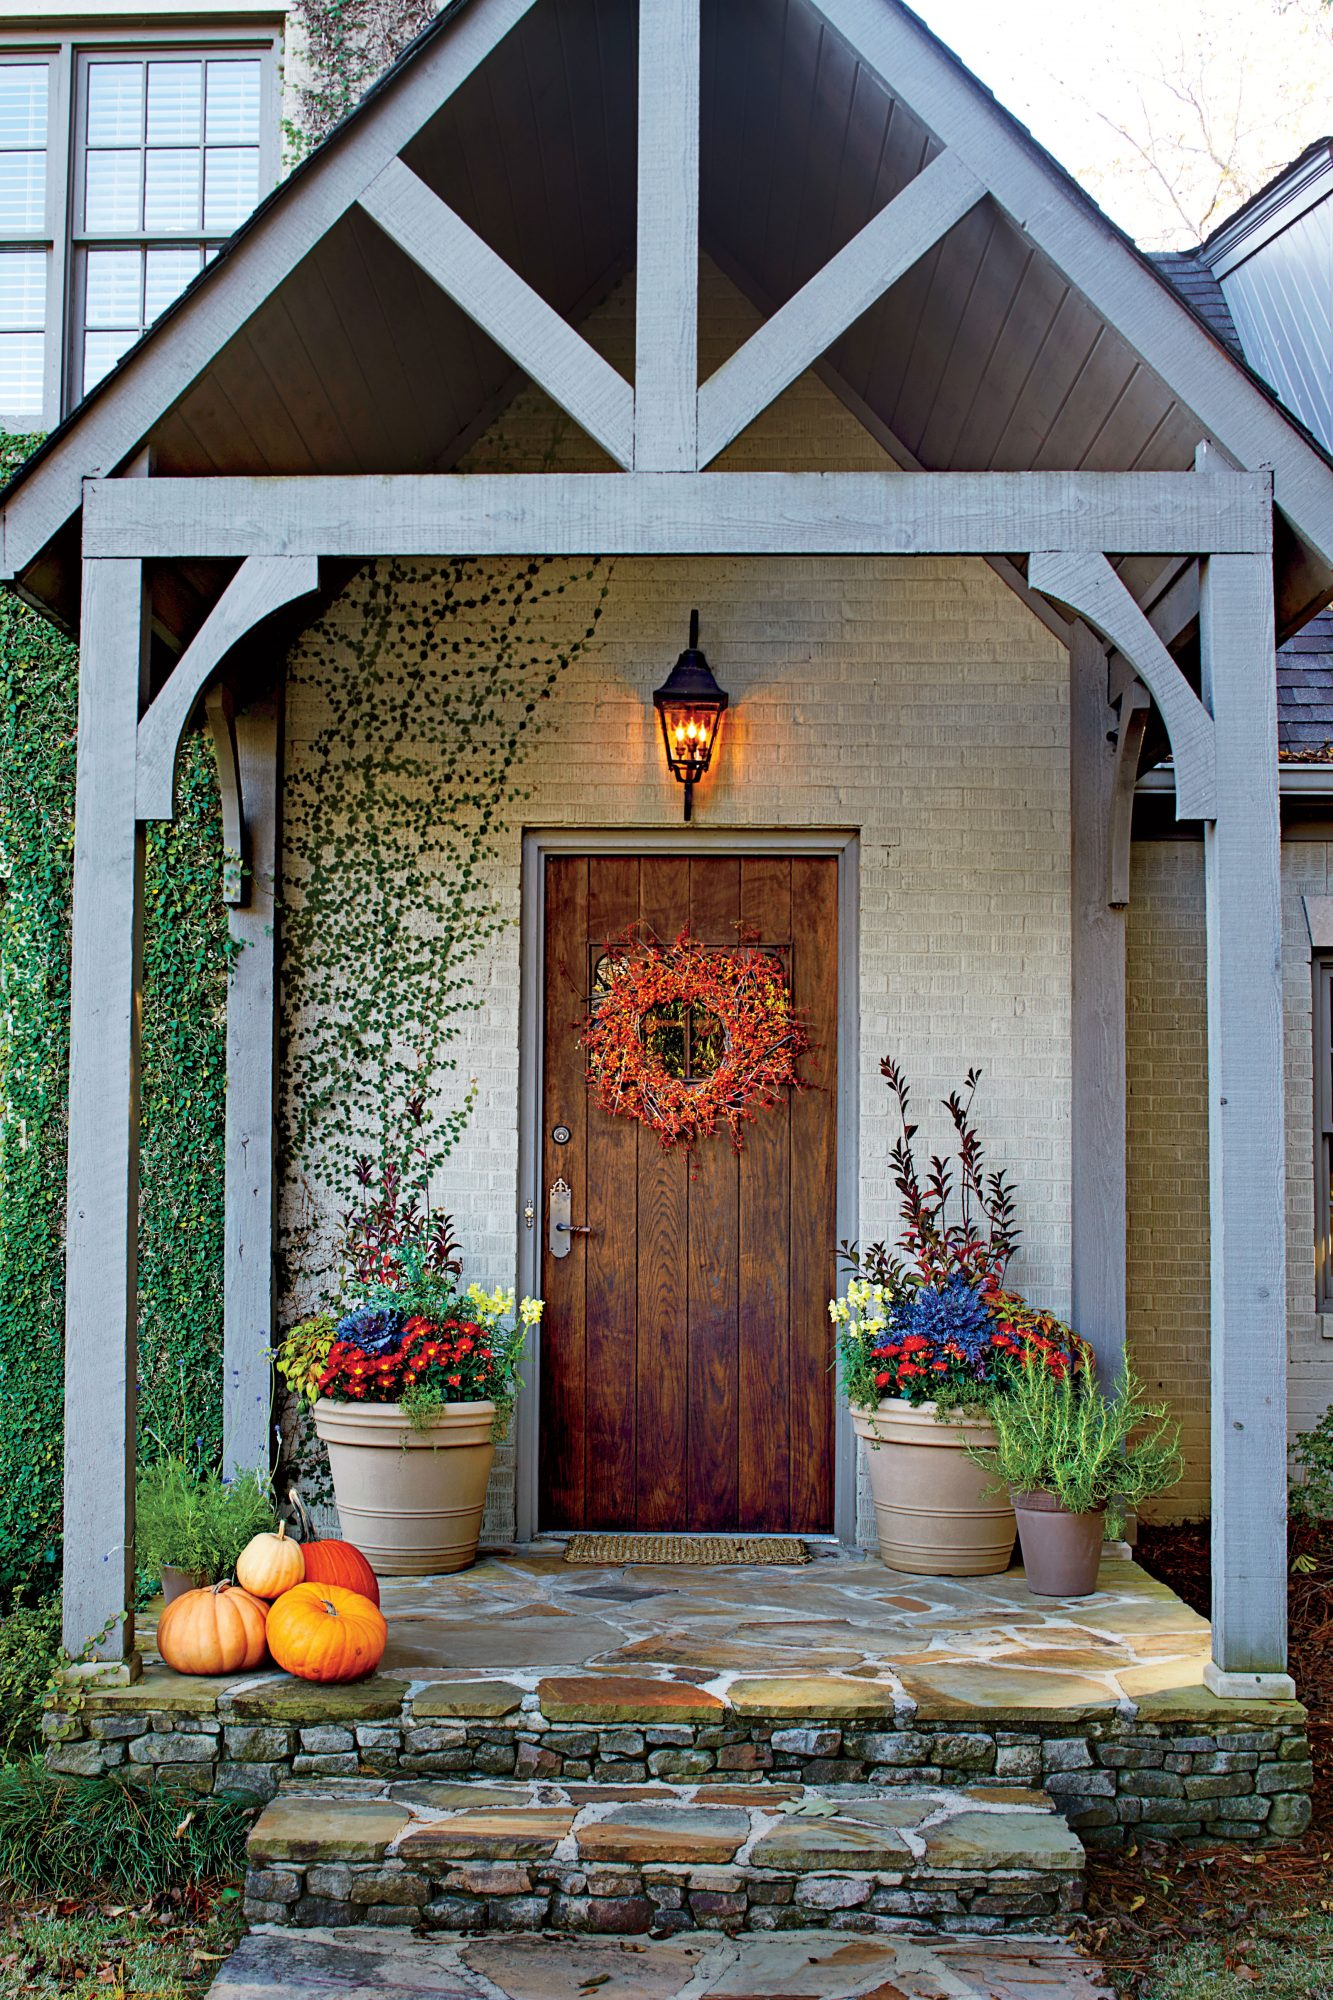 Uncategorized Fall Porch Decorating Ideas Pictures 16 ways to spice up your porch for fall southern living home decor ideas